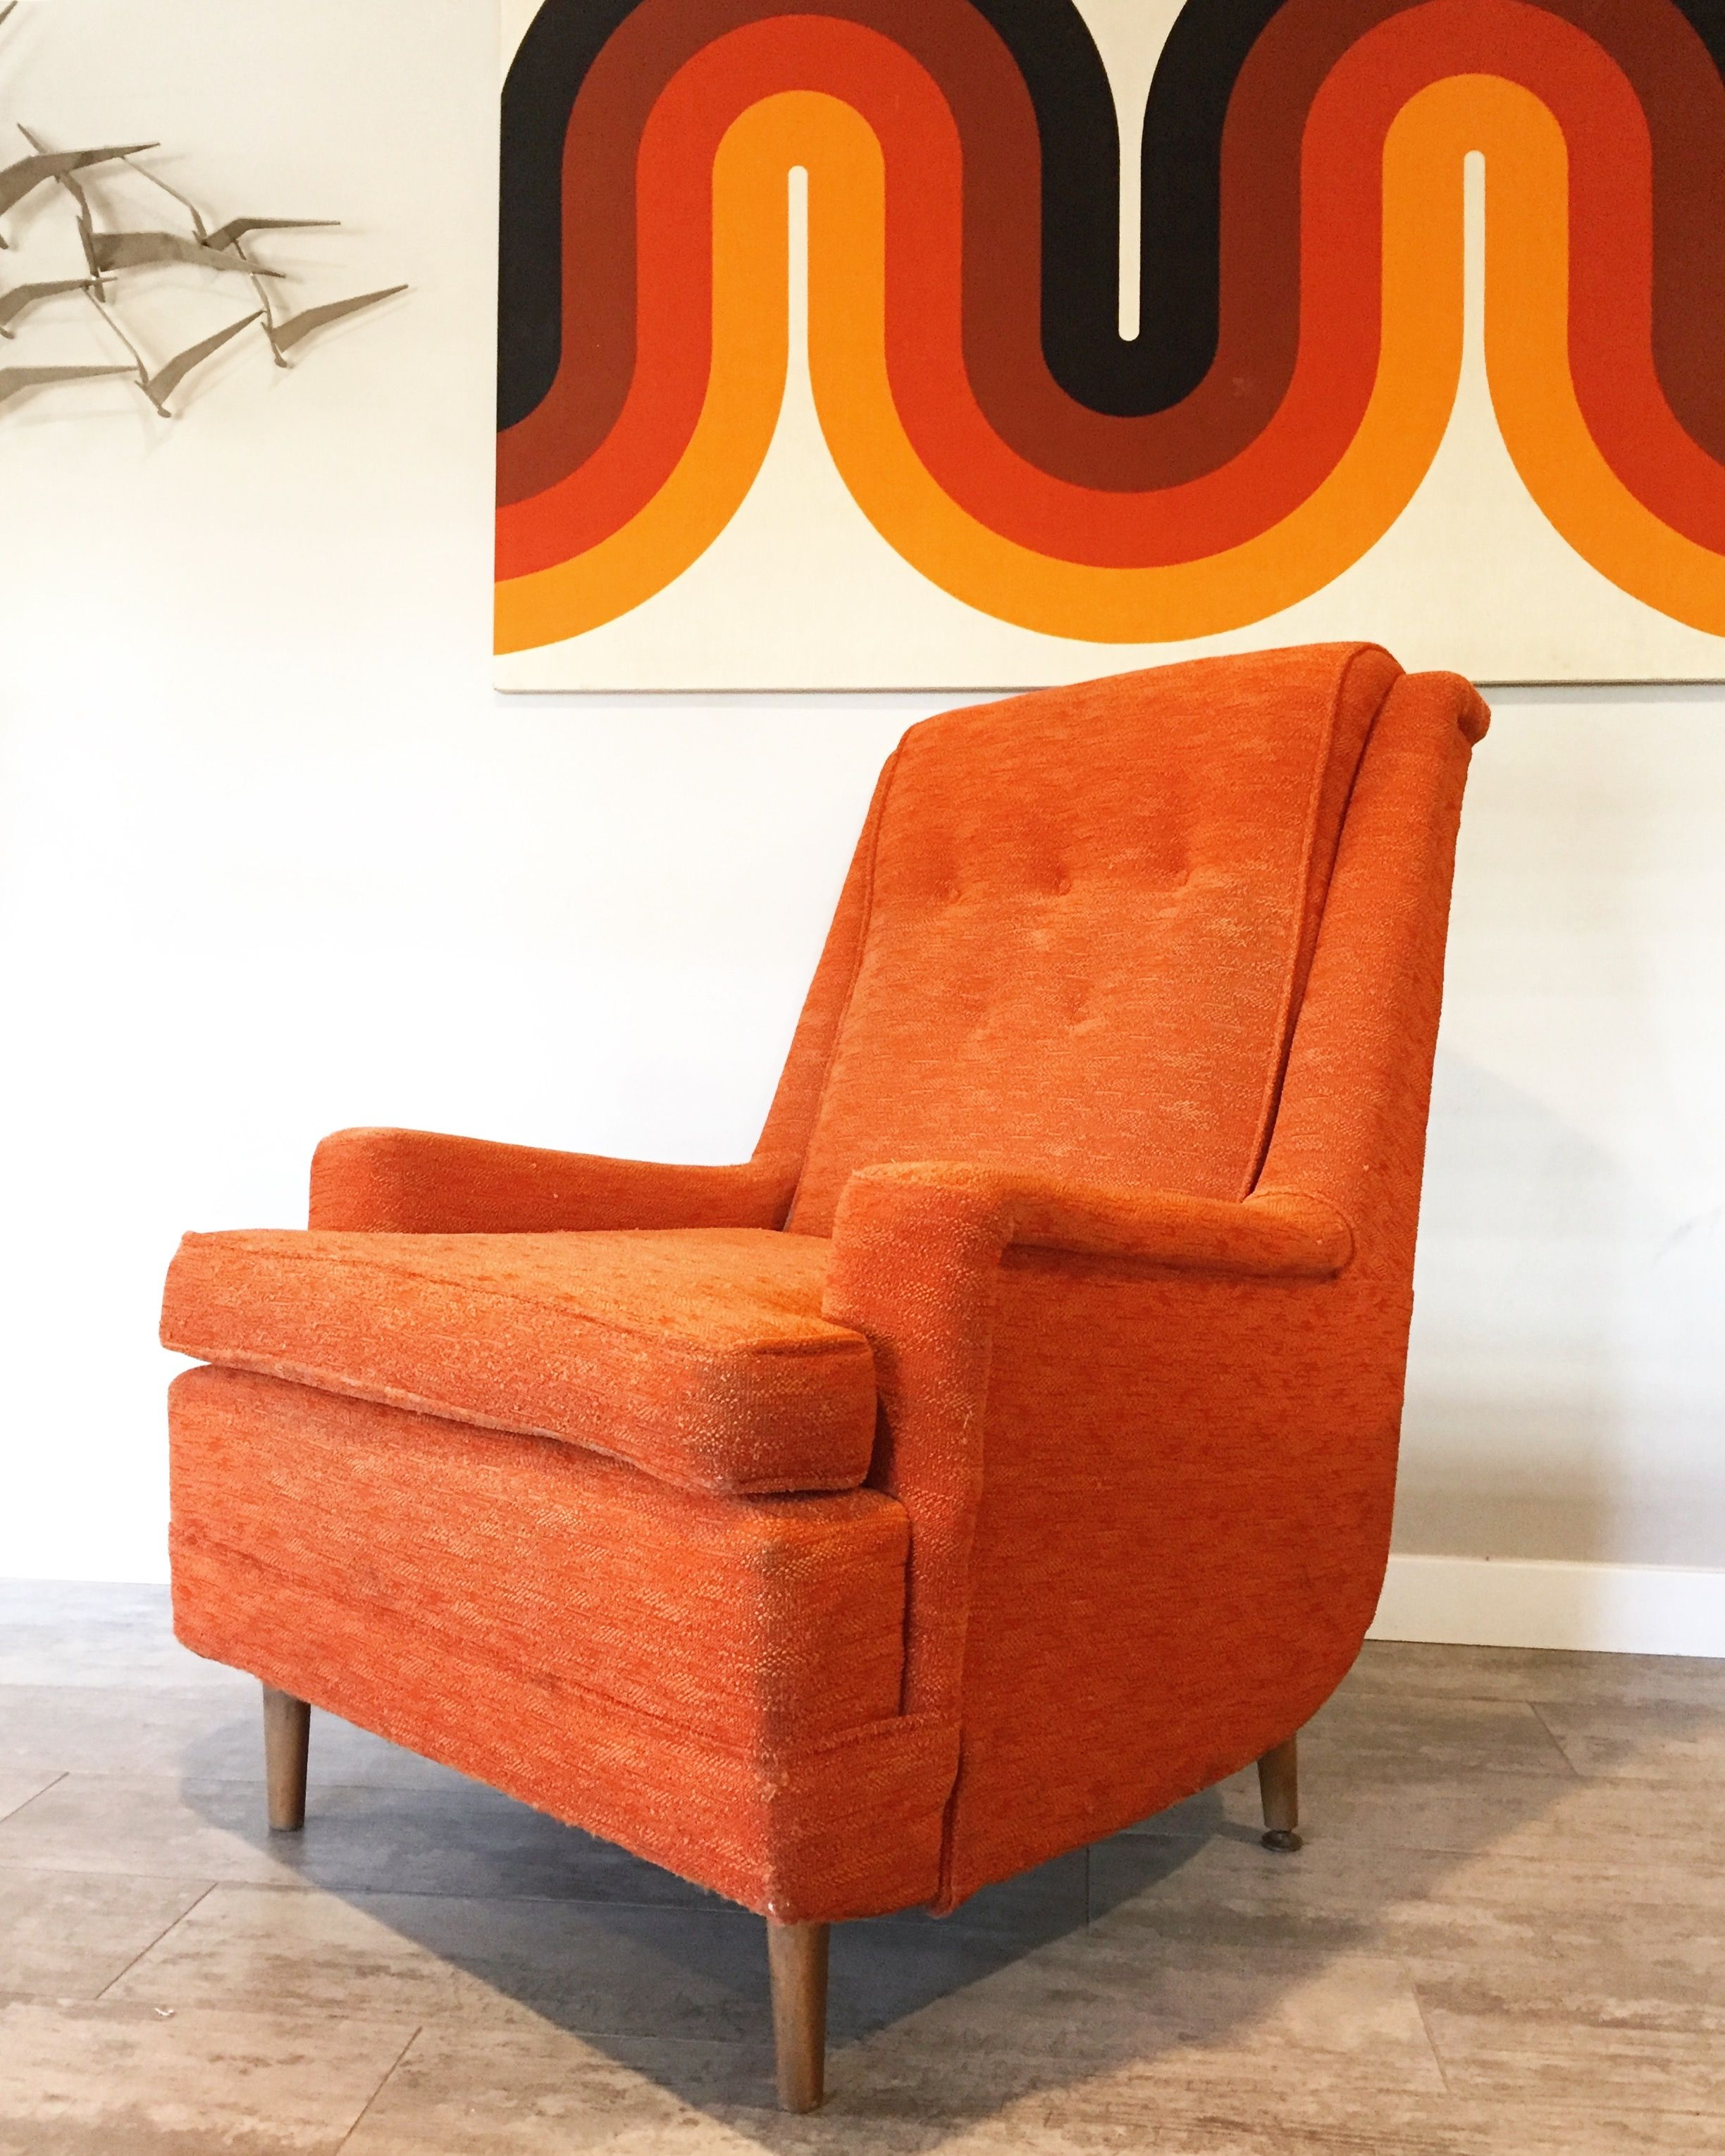 Inspiration about Mid Century Modern Orange Highback Lounge Chair | Revive Inside Orange Rocking Chairs Lounge Chairs (#2 of 20)